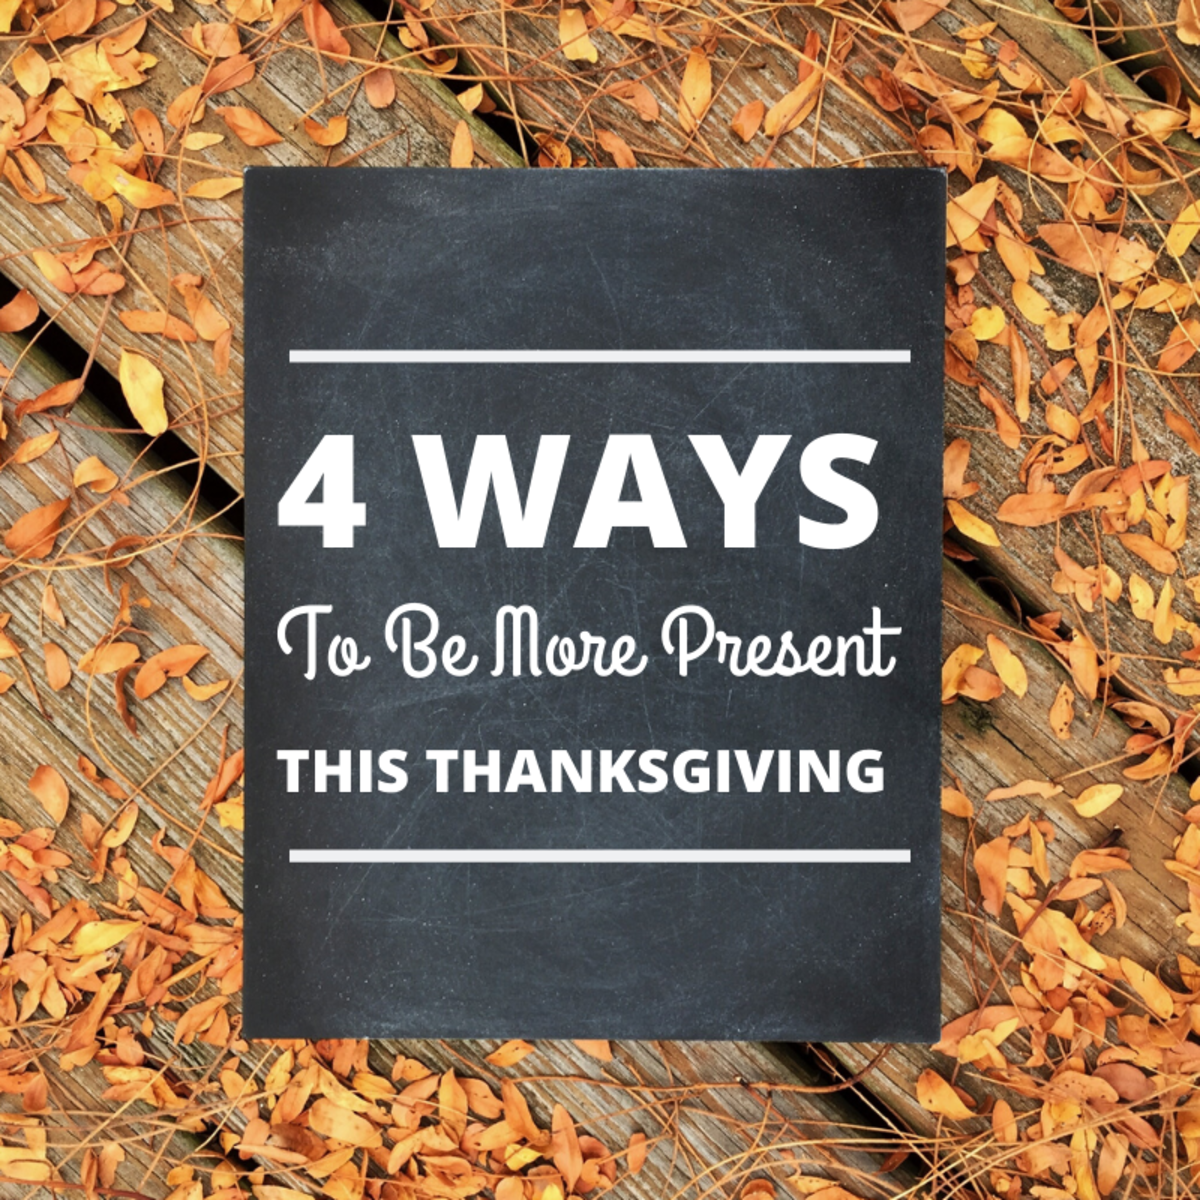 Four Ways to Be More Present This Thanksgiving